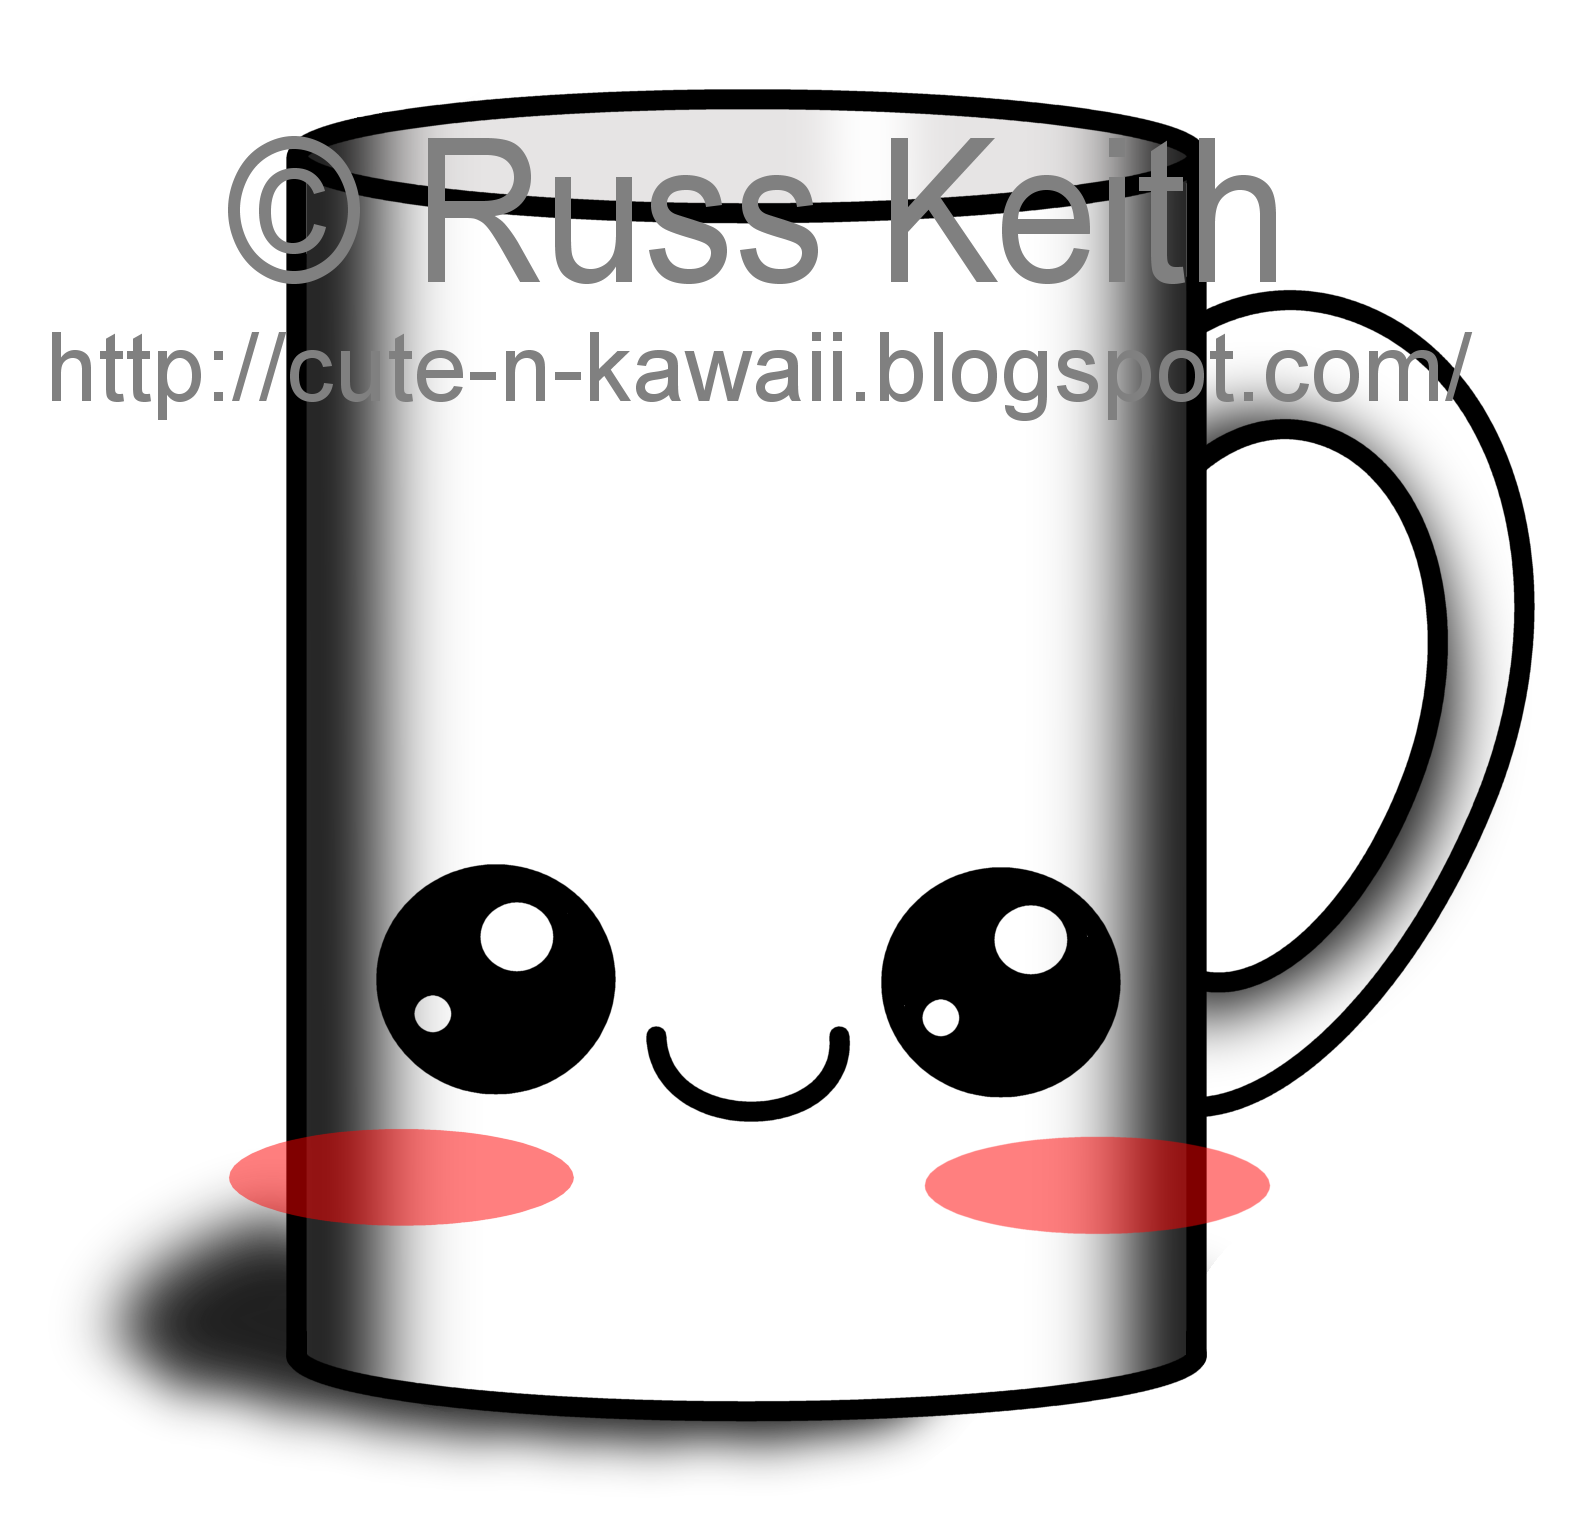 Coffee Kawaii Clipart Coffee Clipart 17016 Seni Doodle Inspirasi Desain Grafis Seni